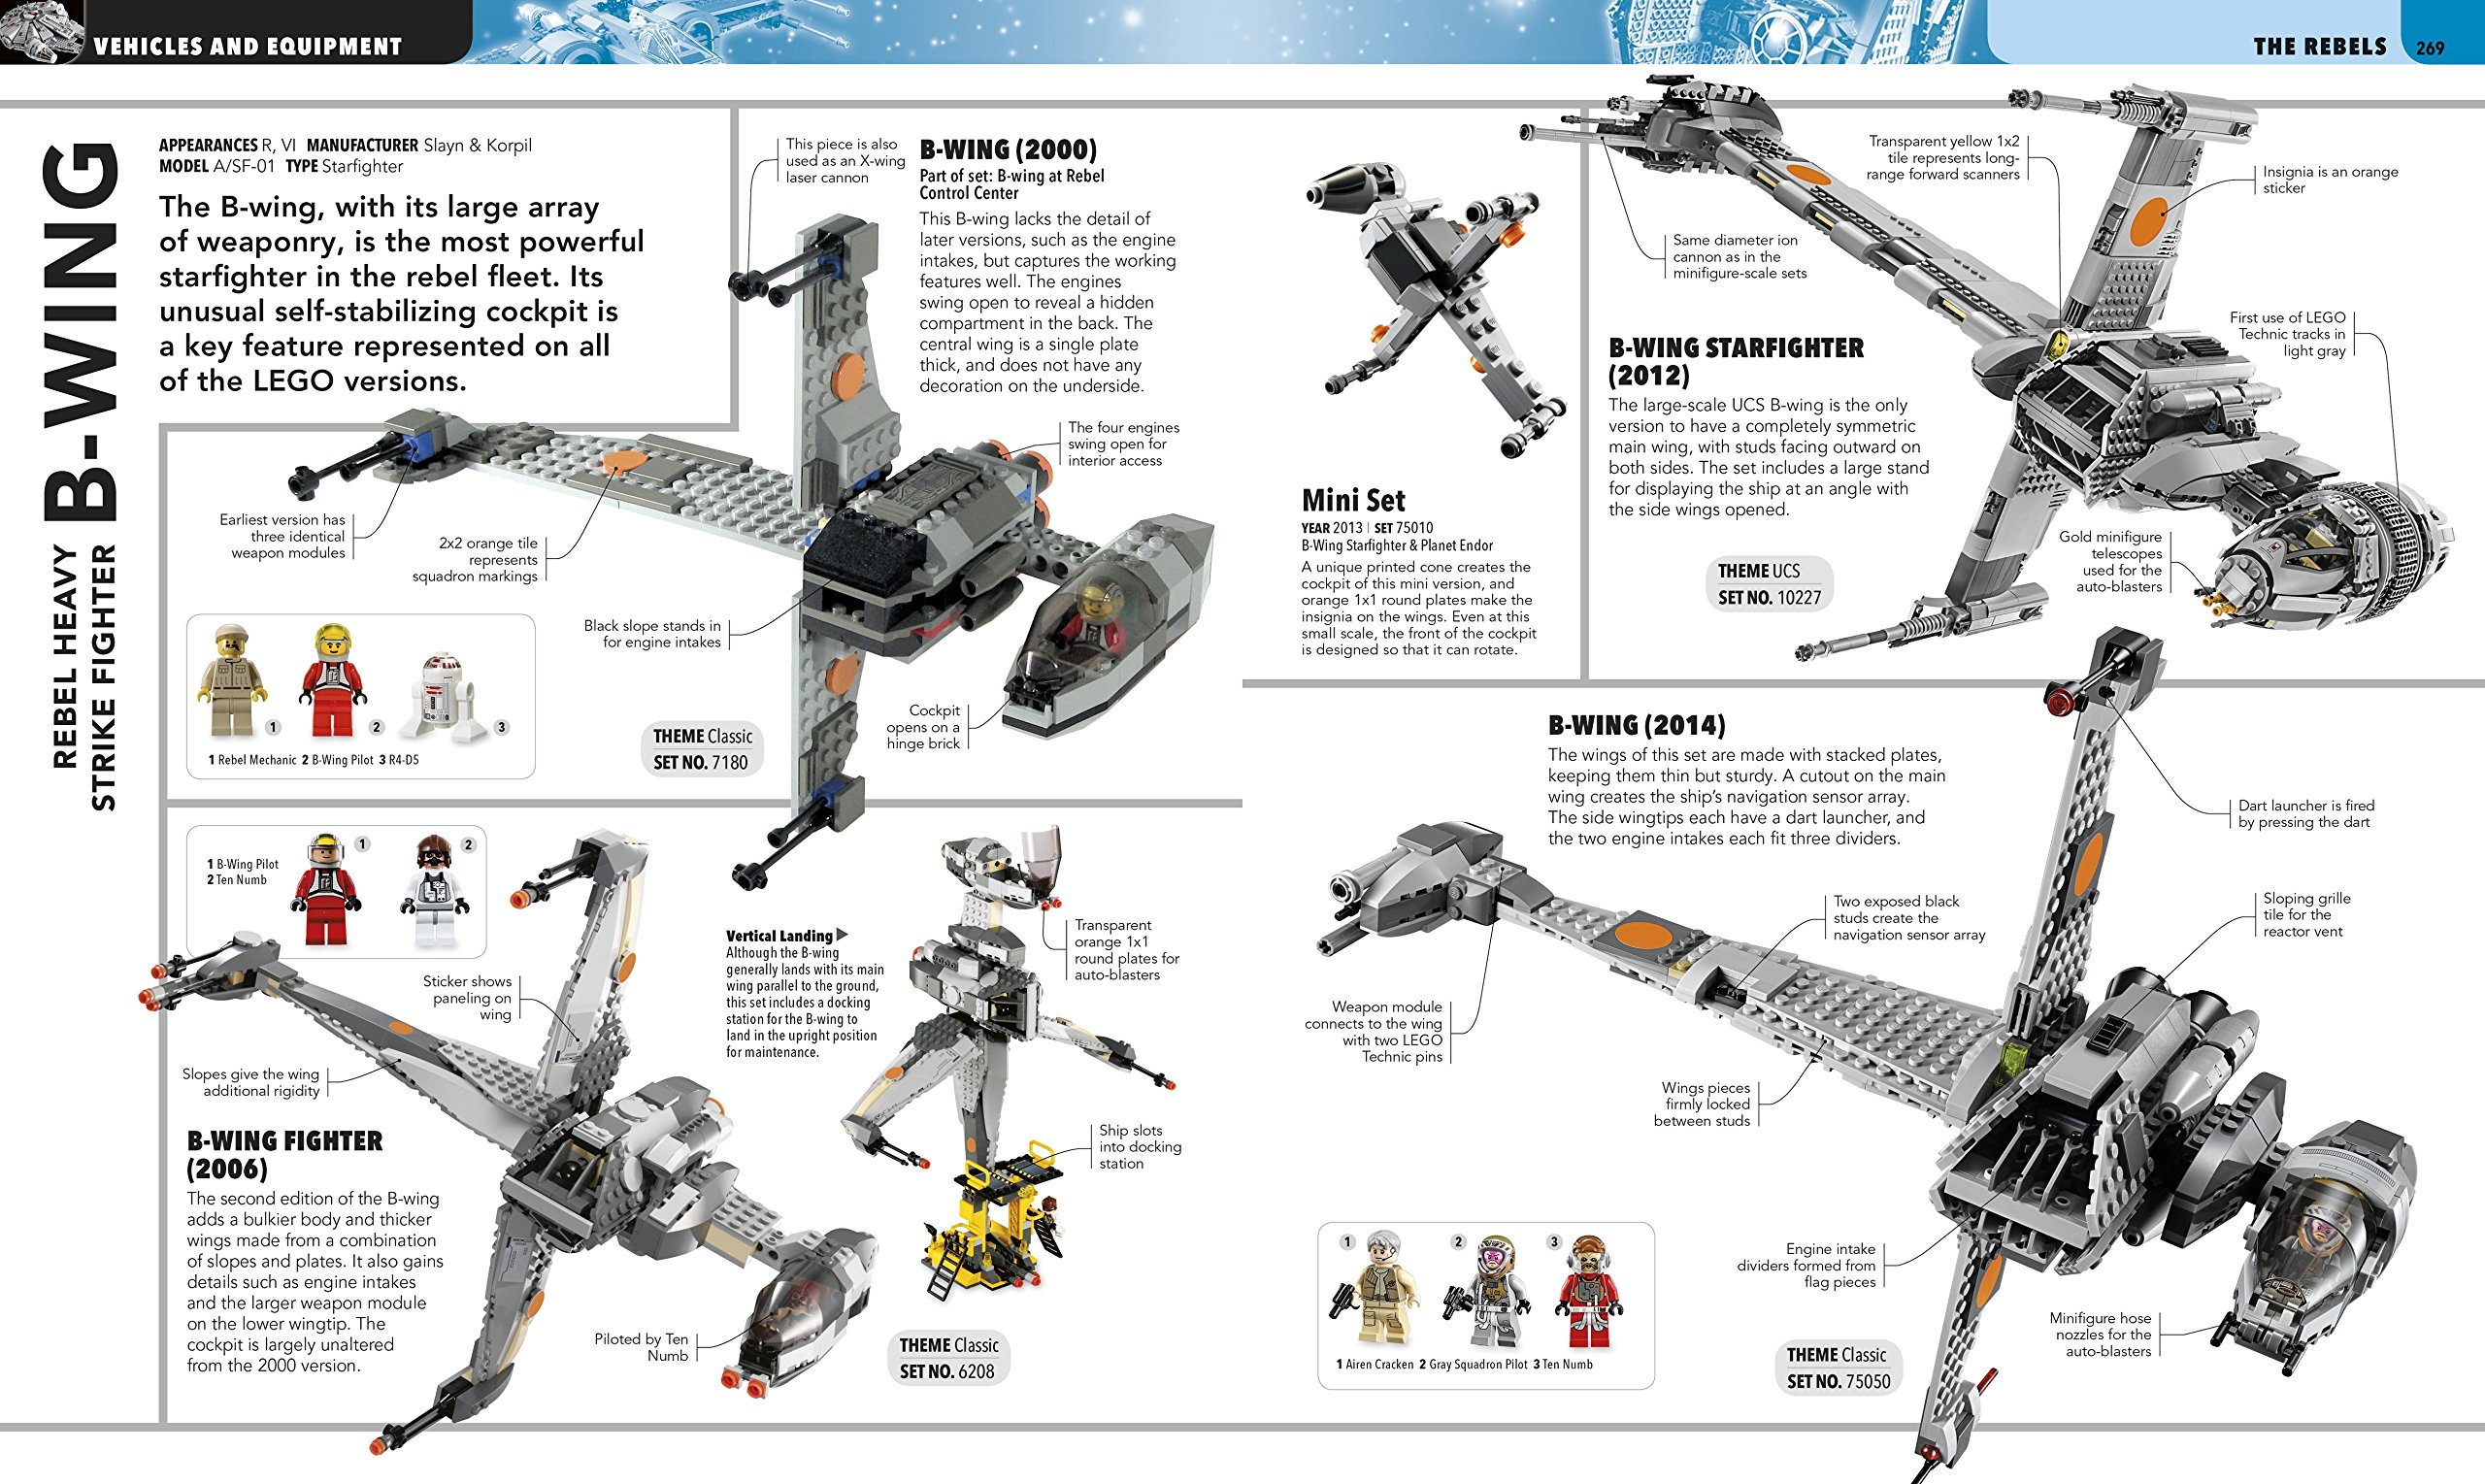 Ultimate LEGO Star Wars B-wing spread